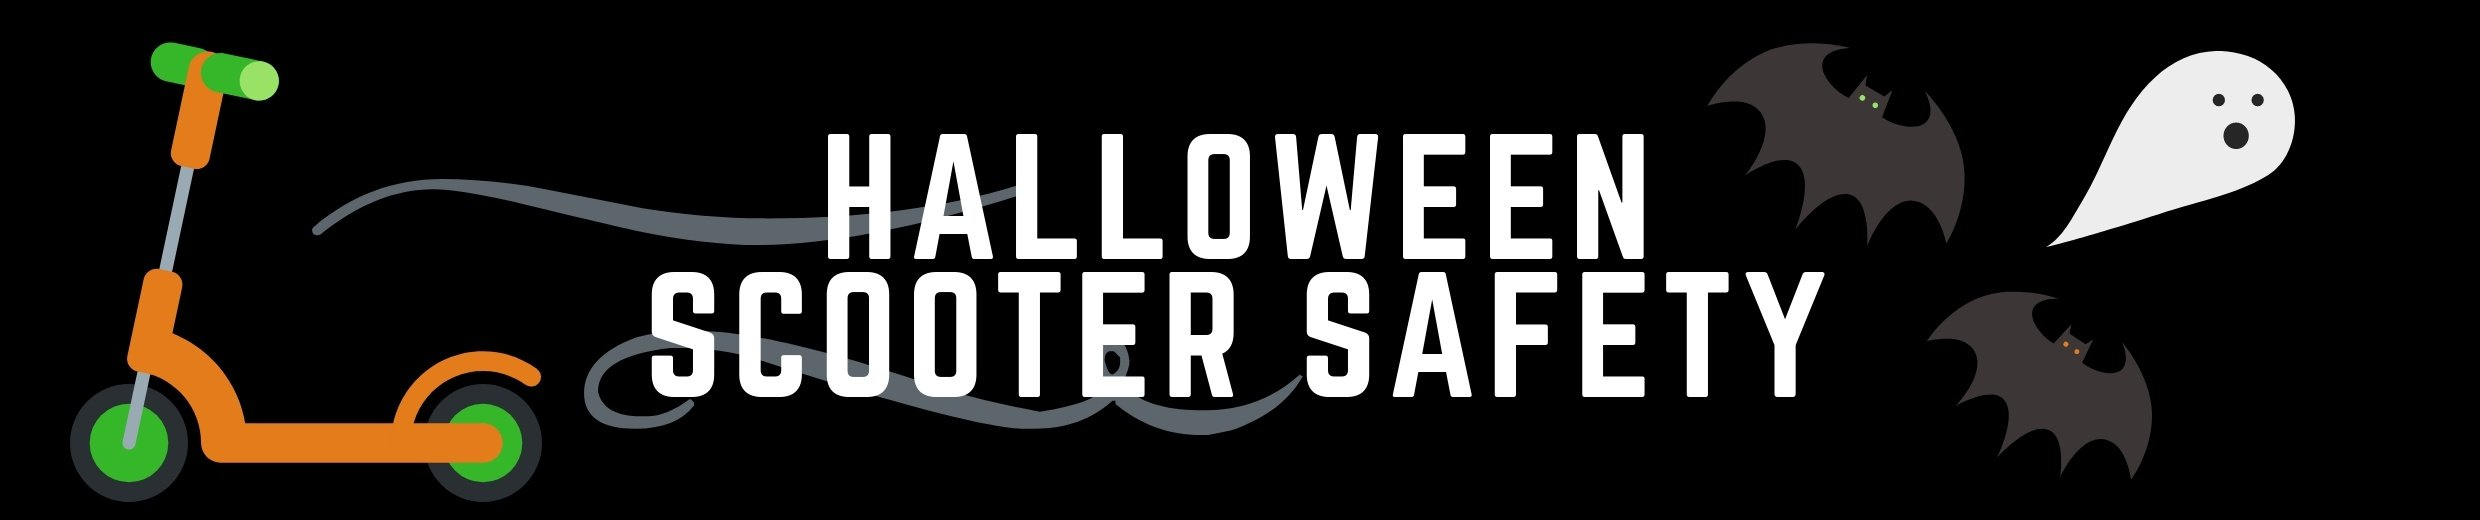 Halloween Scooter Safety